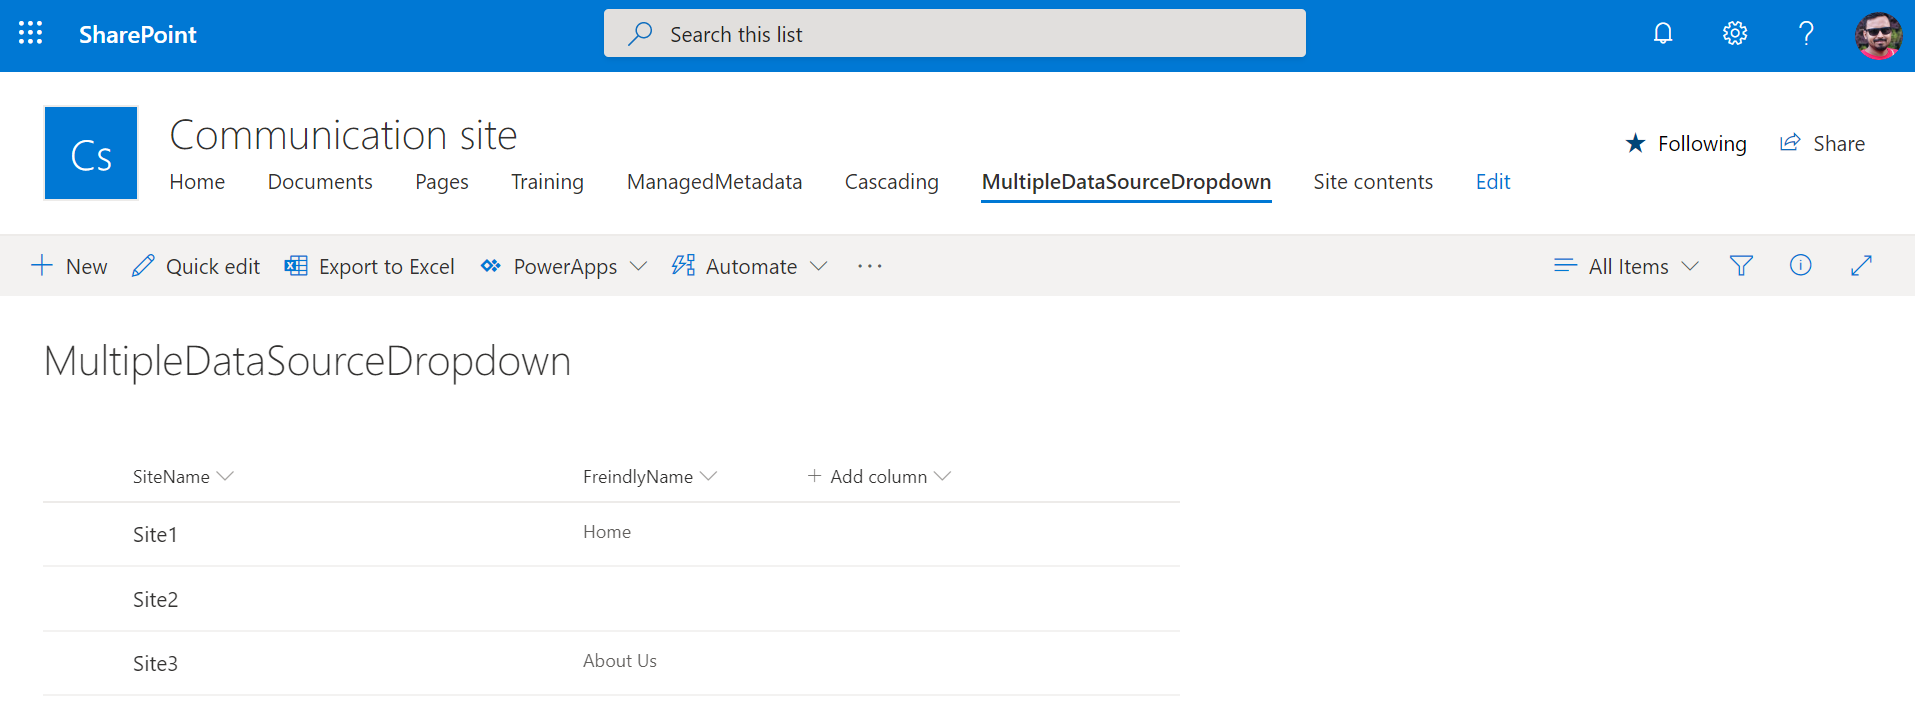 PowerApps: Master SharePoint List